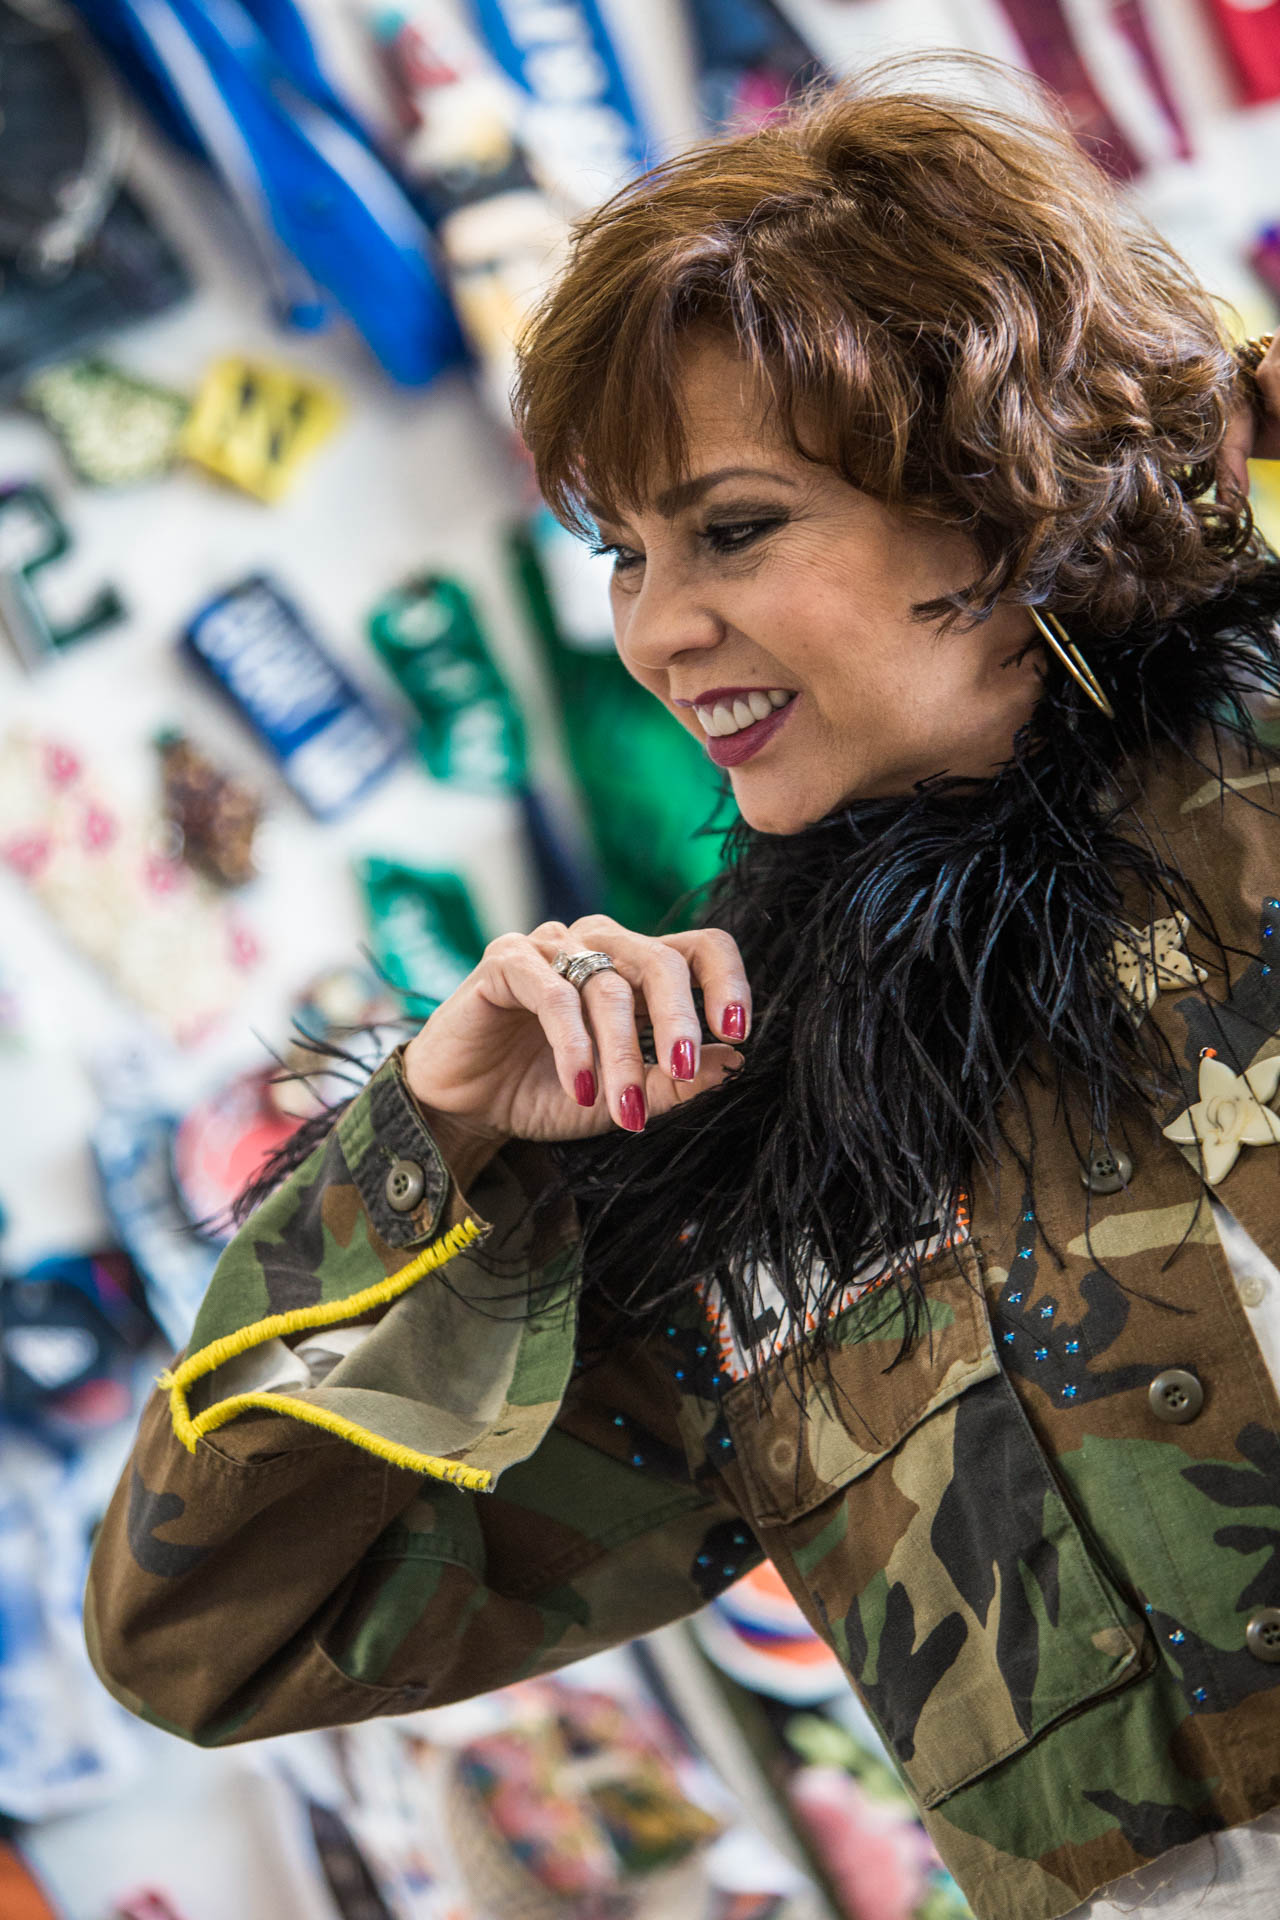 miami-blogger-chuky-reyna-wearing-claudia-gontovnik-upcycled-camo-jacket